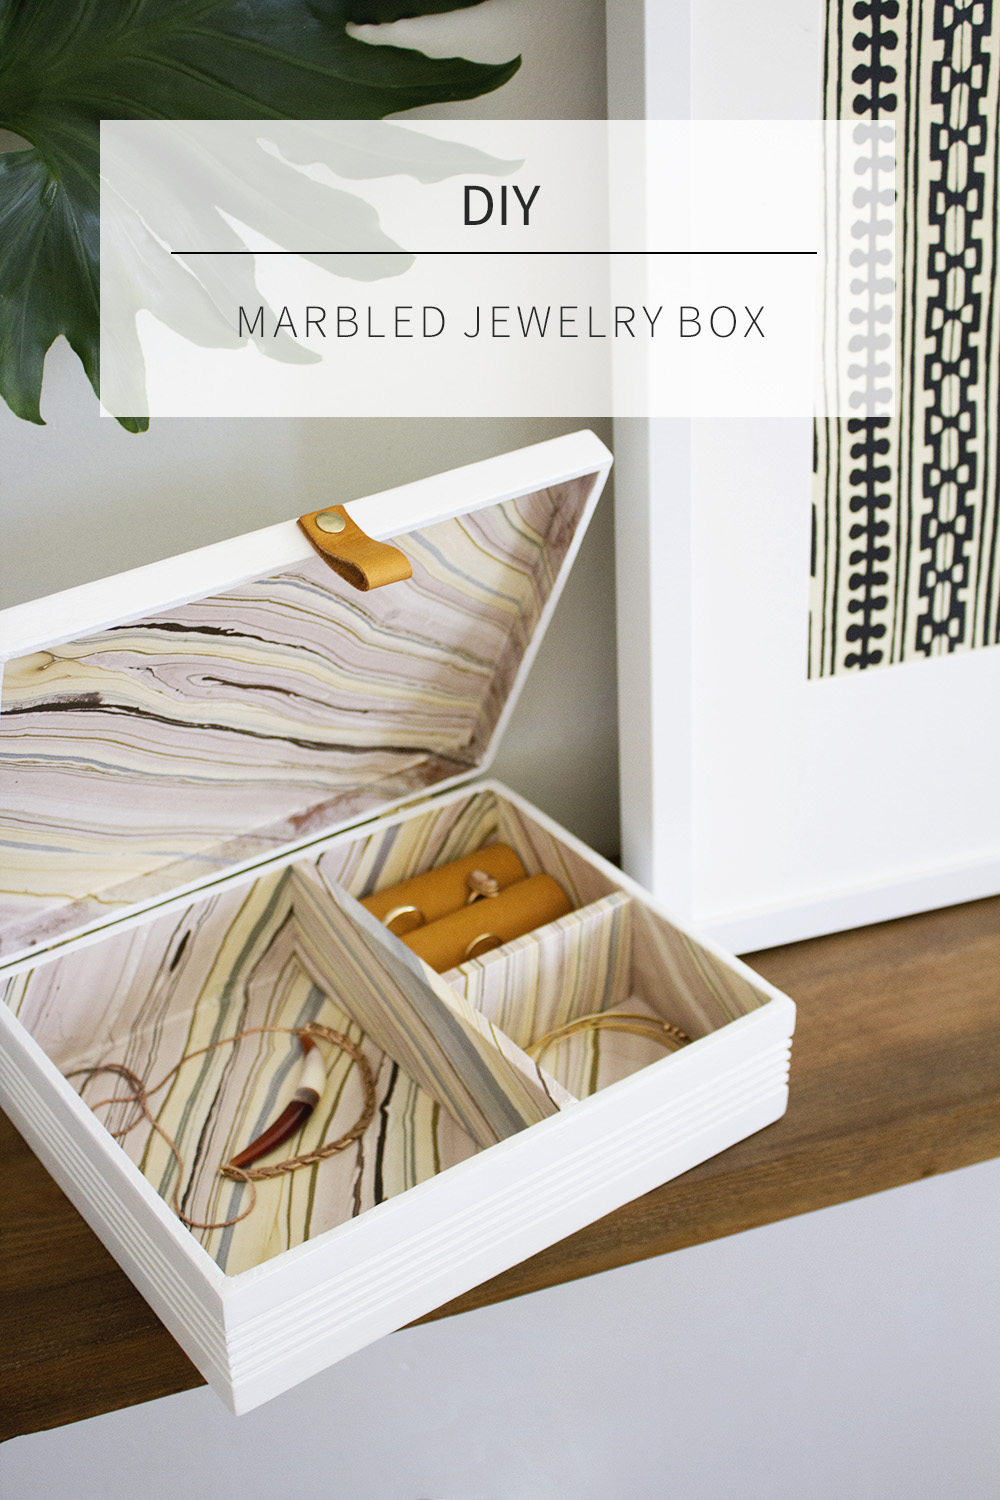 how to make paper jewellery box at home